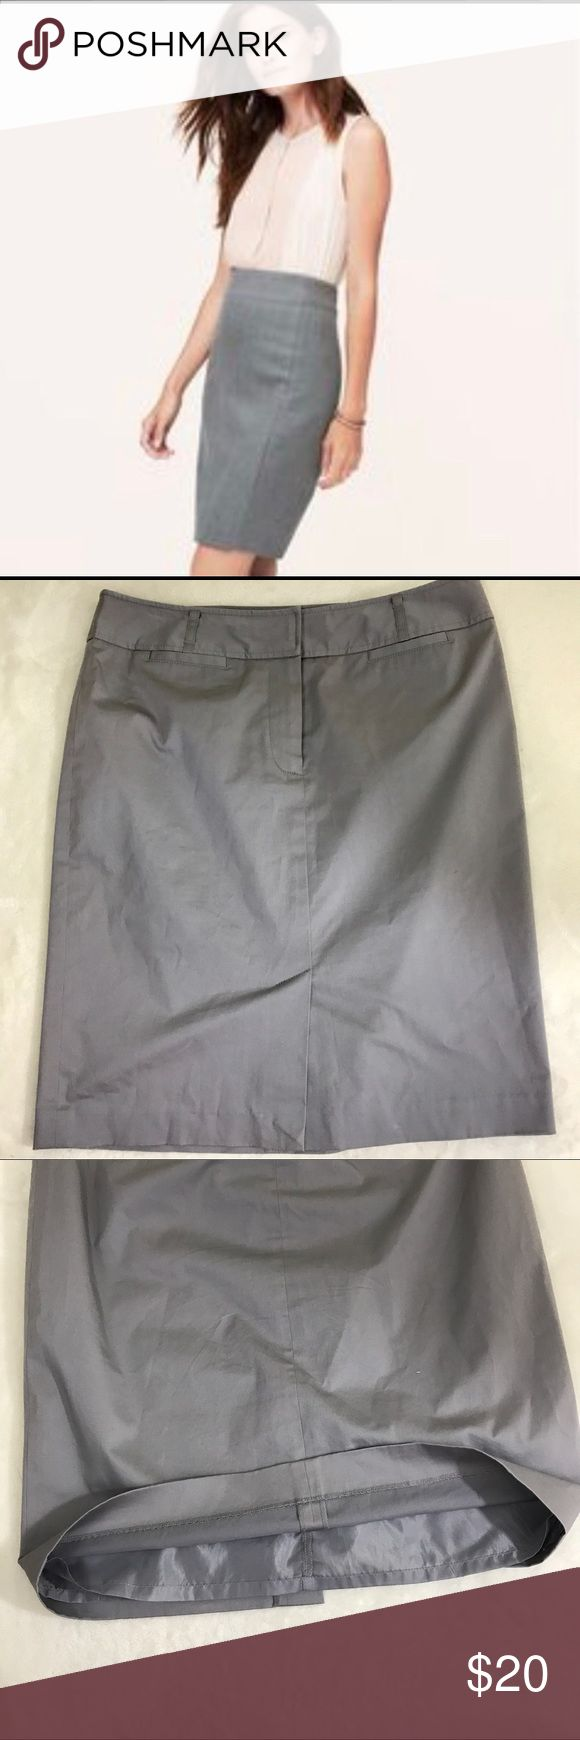 LOFT Silver Gray Pencil Skirt Business Casual Sz 8 Excellent condition with no stains or defects. See photos for measurements. LOFT Skirts Pencil